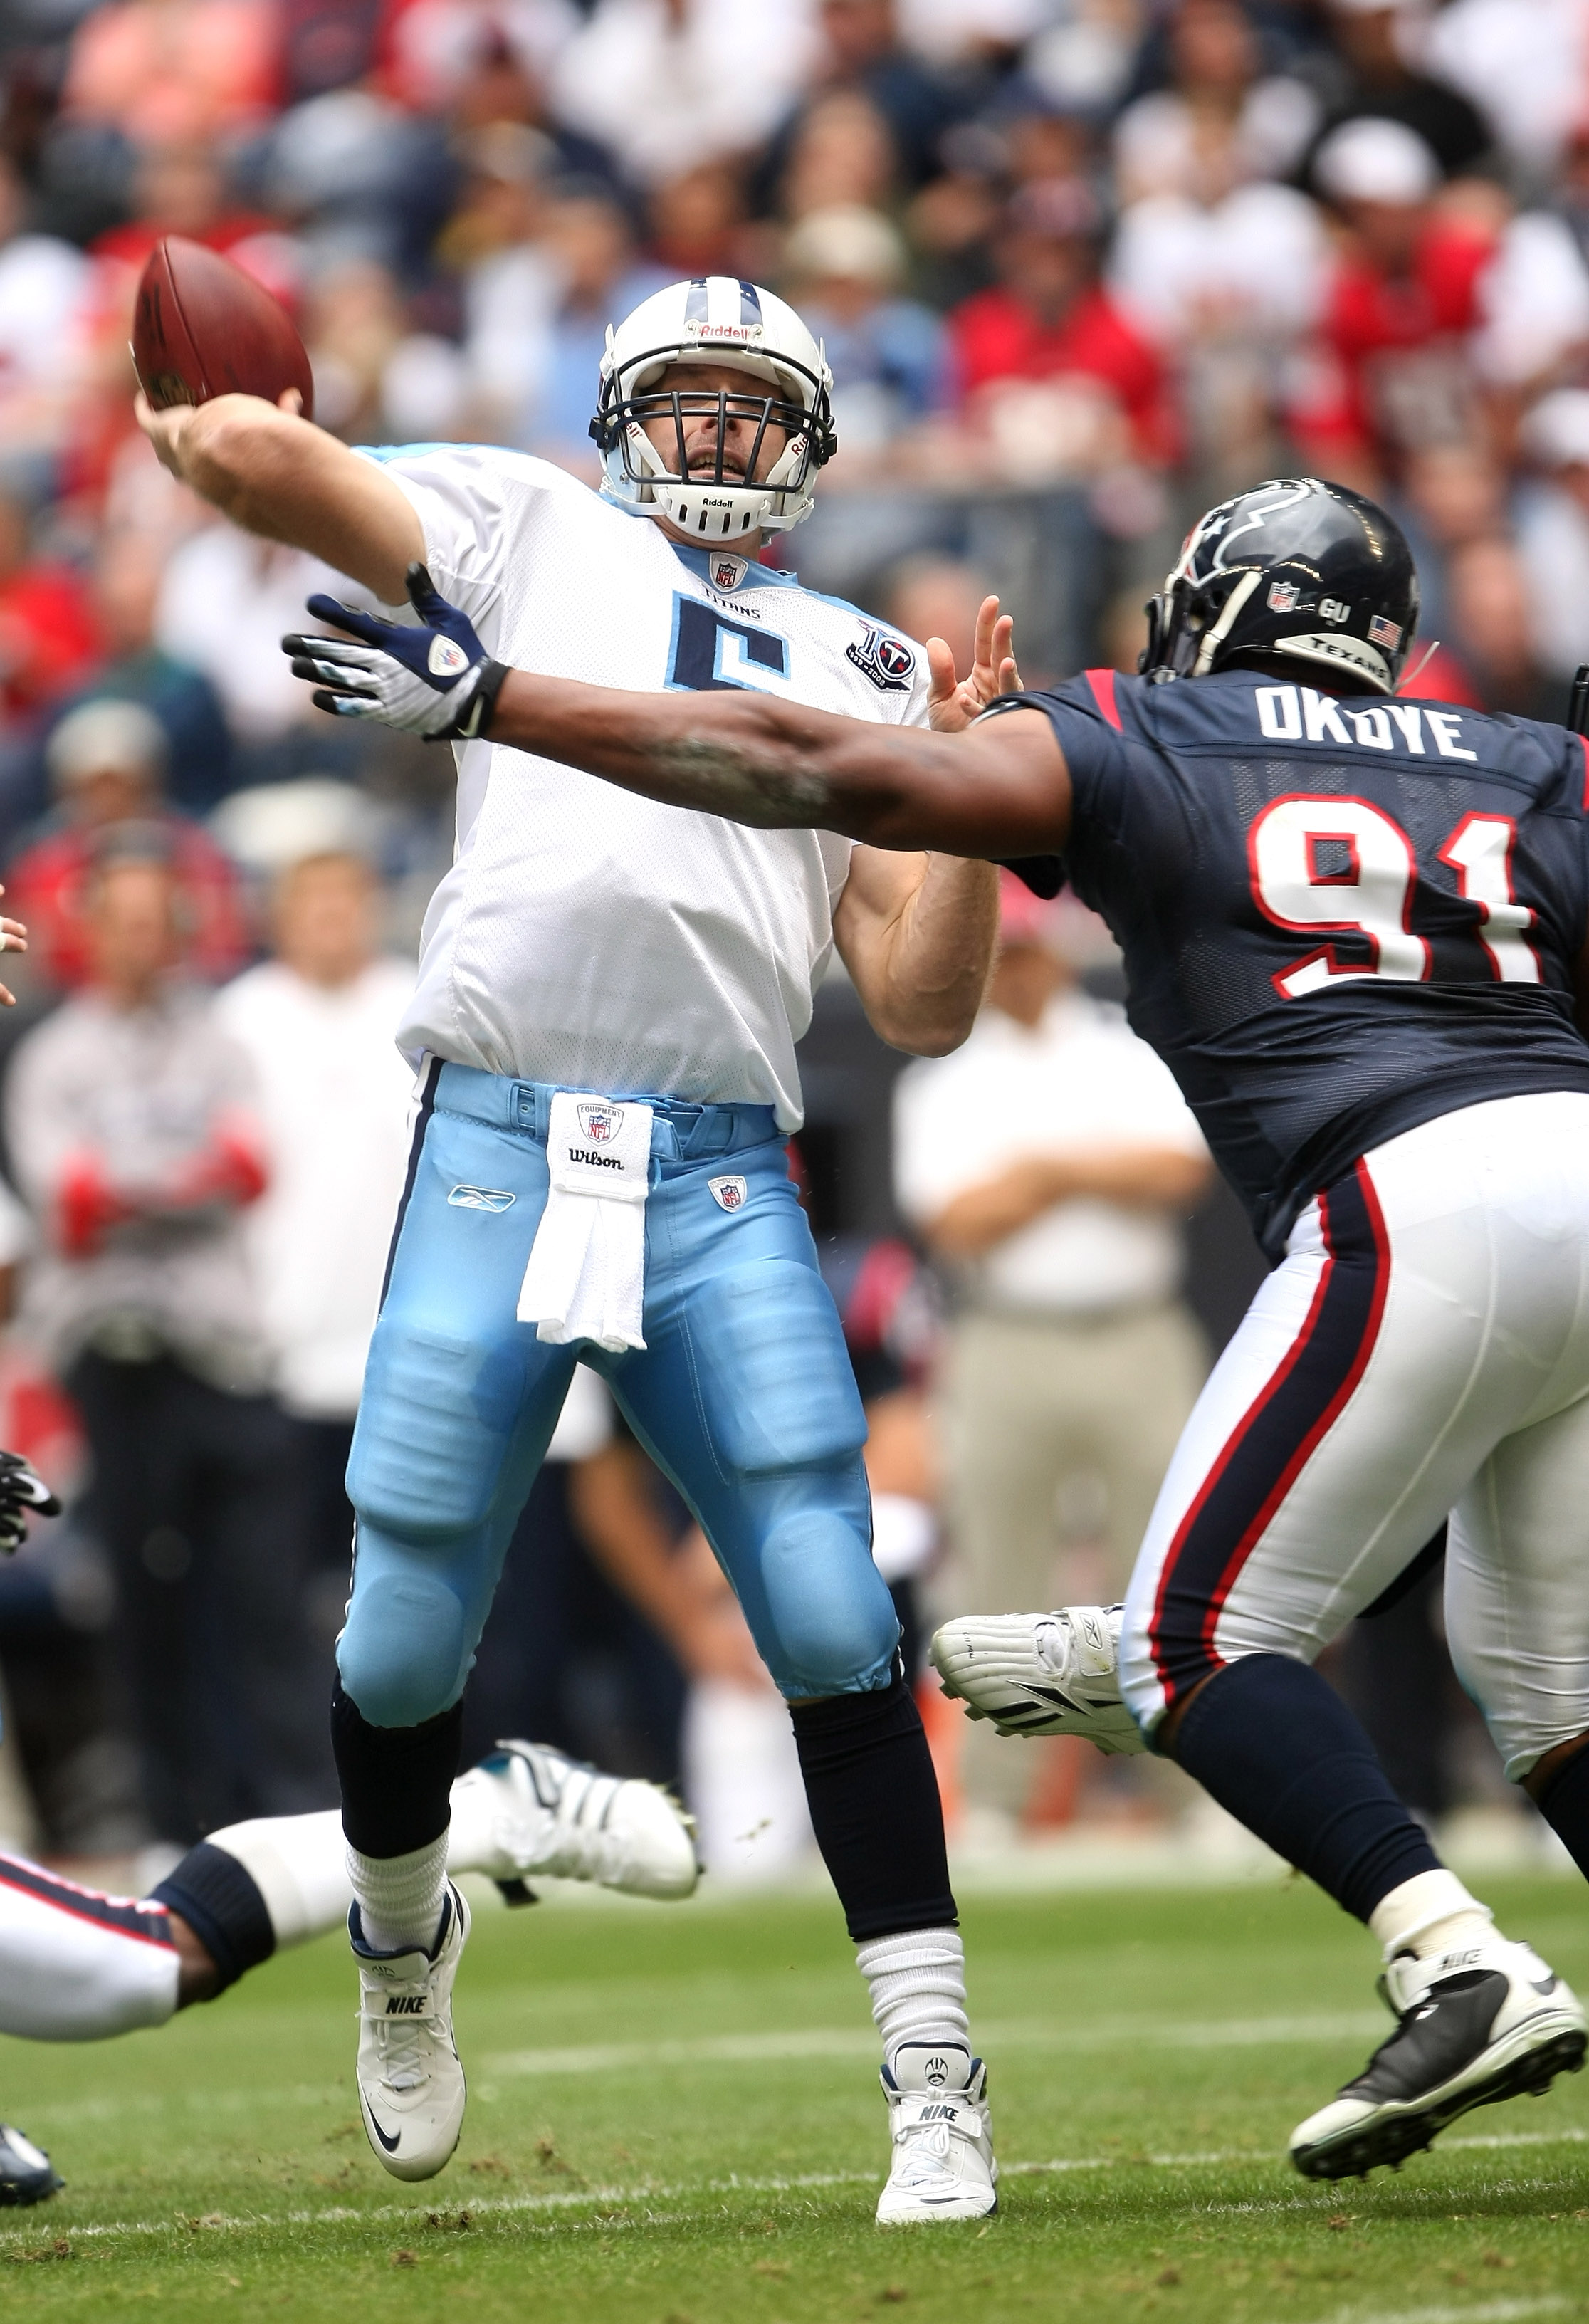 HOUSTON - DECEMBER 14:  Quarterback Kerry Collins #5 of the Tennessee Titans throws a pass over defensive tackle Amobi Okoye #91 of the Houston Texans on December 14, 2008 at Reliant Stadium in Houston, Texas.  (Photo by Stephen Dunn/Getty Images)